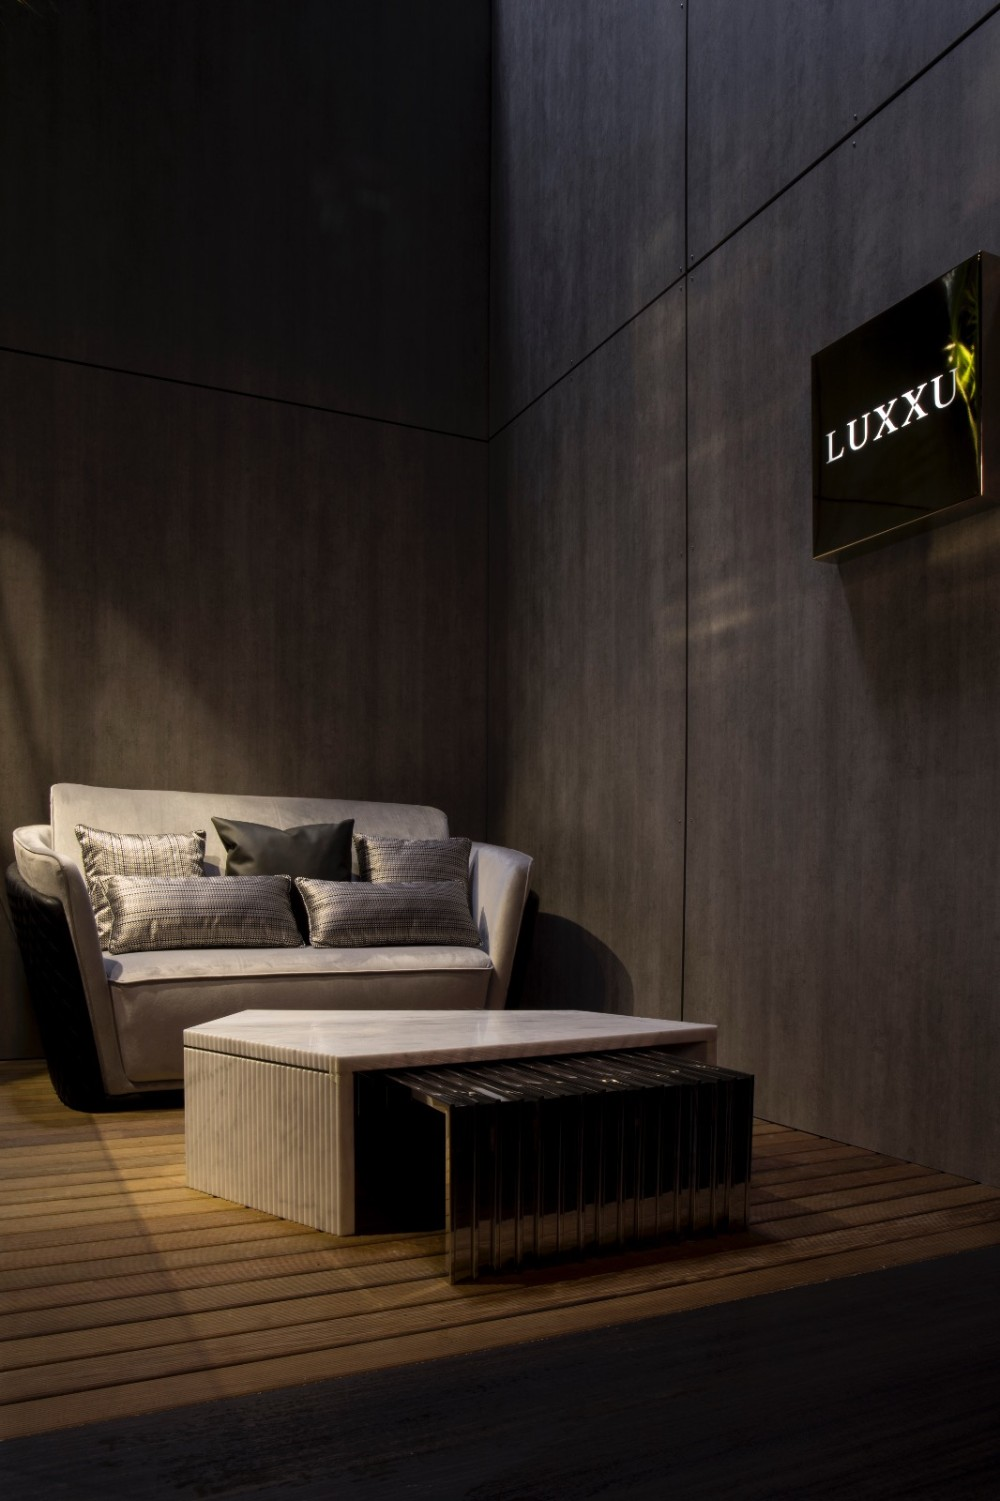 luxury furniture brands Top 5 Luxury Furniture Brands At iSaloni 2019 Top 5 Luxury Furniture Brands At iSaloni 2019 03